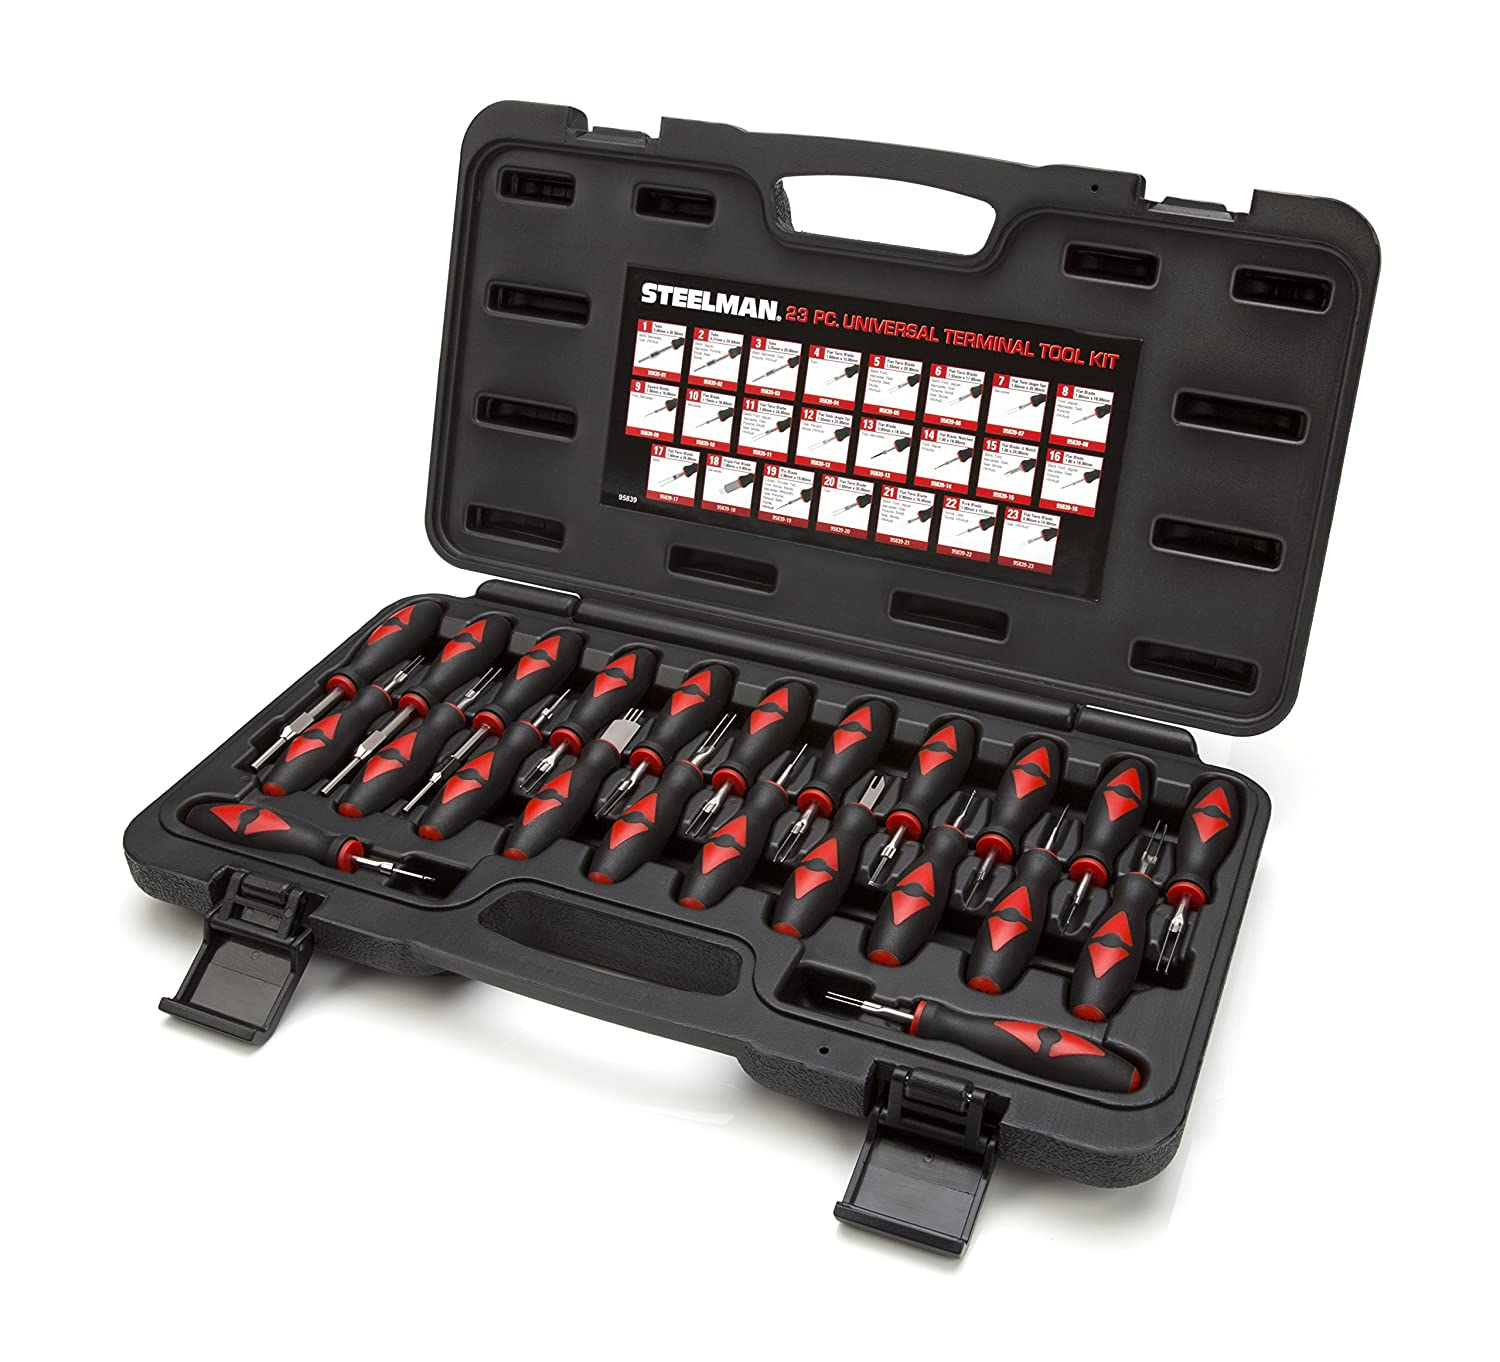 23-Piece Universal Terminal Tool Kit for Auto Technicians by Steelman,  Safely Remove Wires from Terminal Block Without Damage, Variety of Blade  Styles